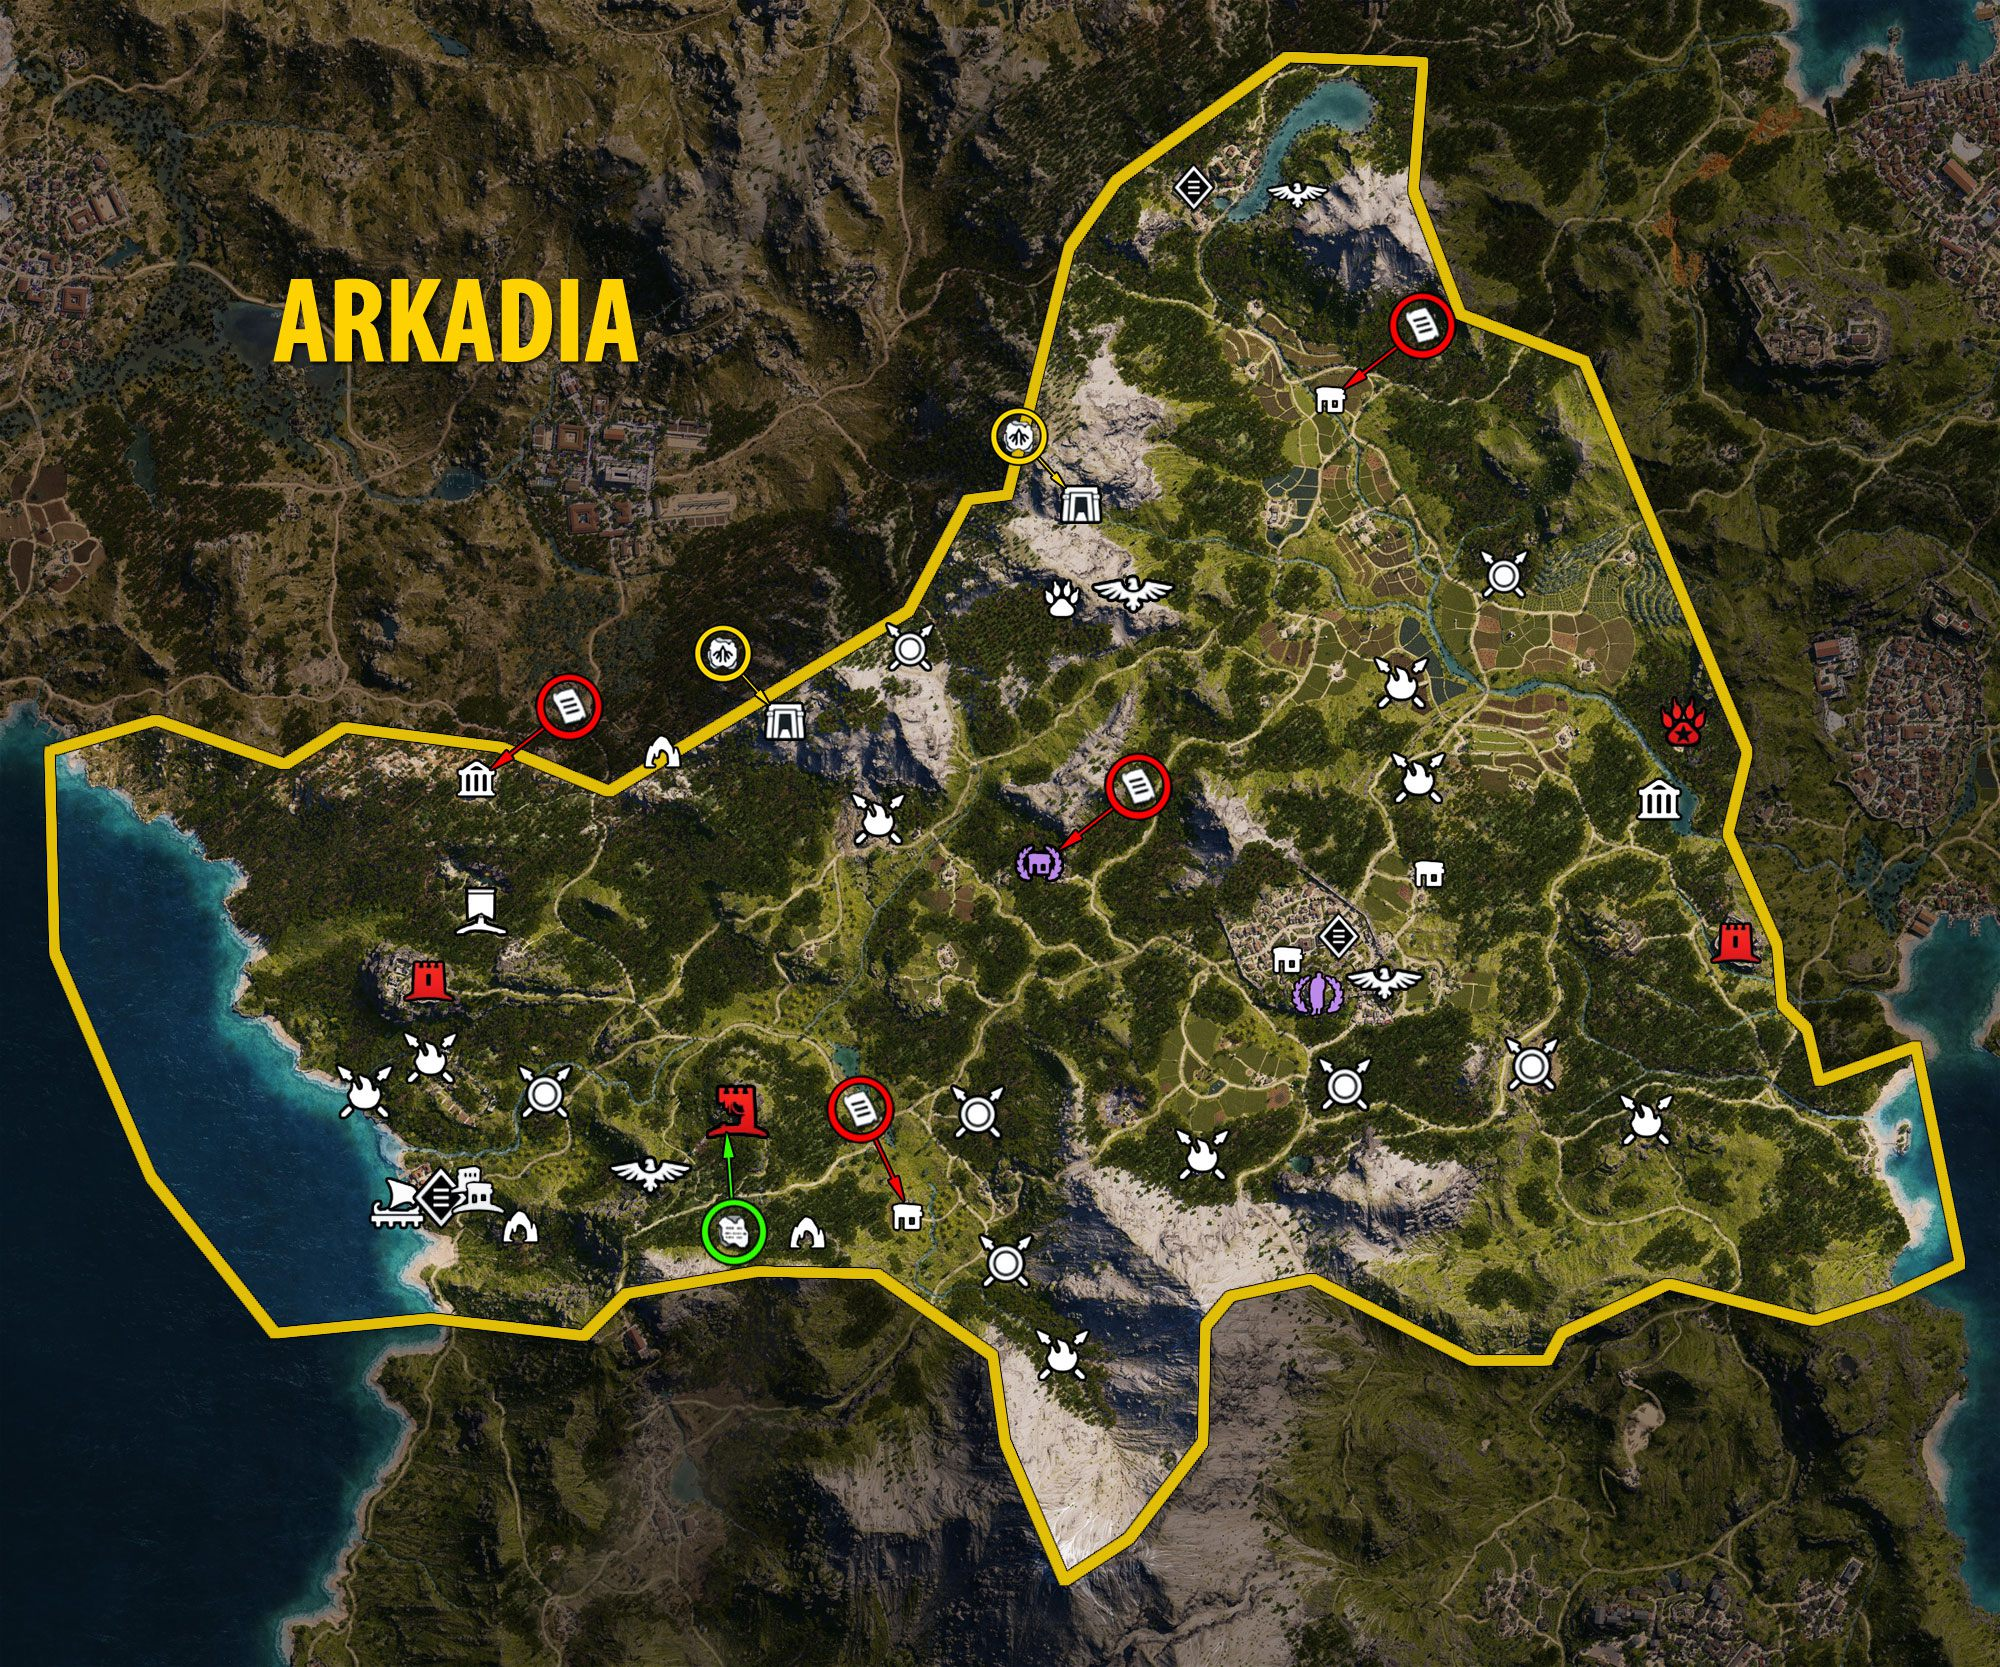 Arkadia's Map - Assassin's Creed Odyssey